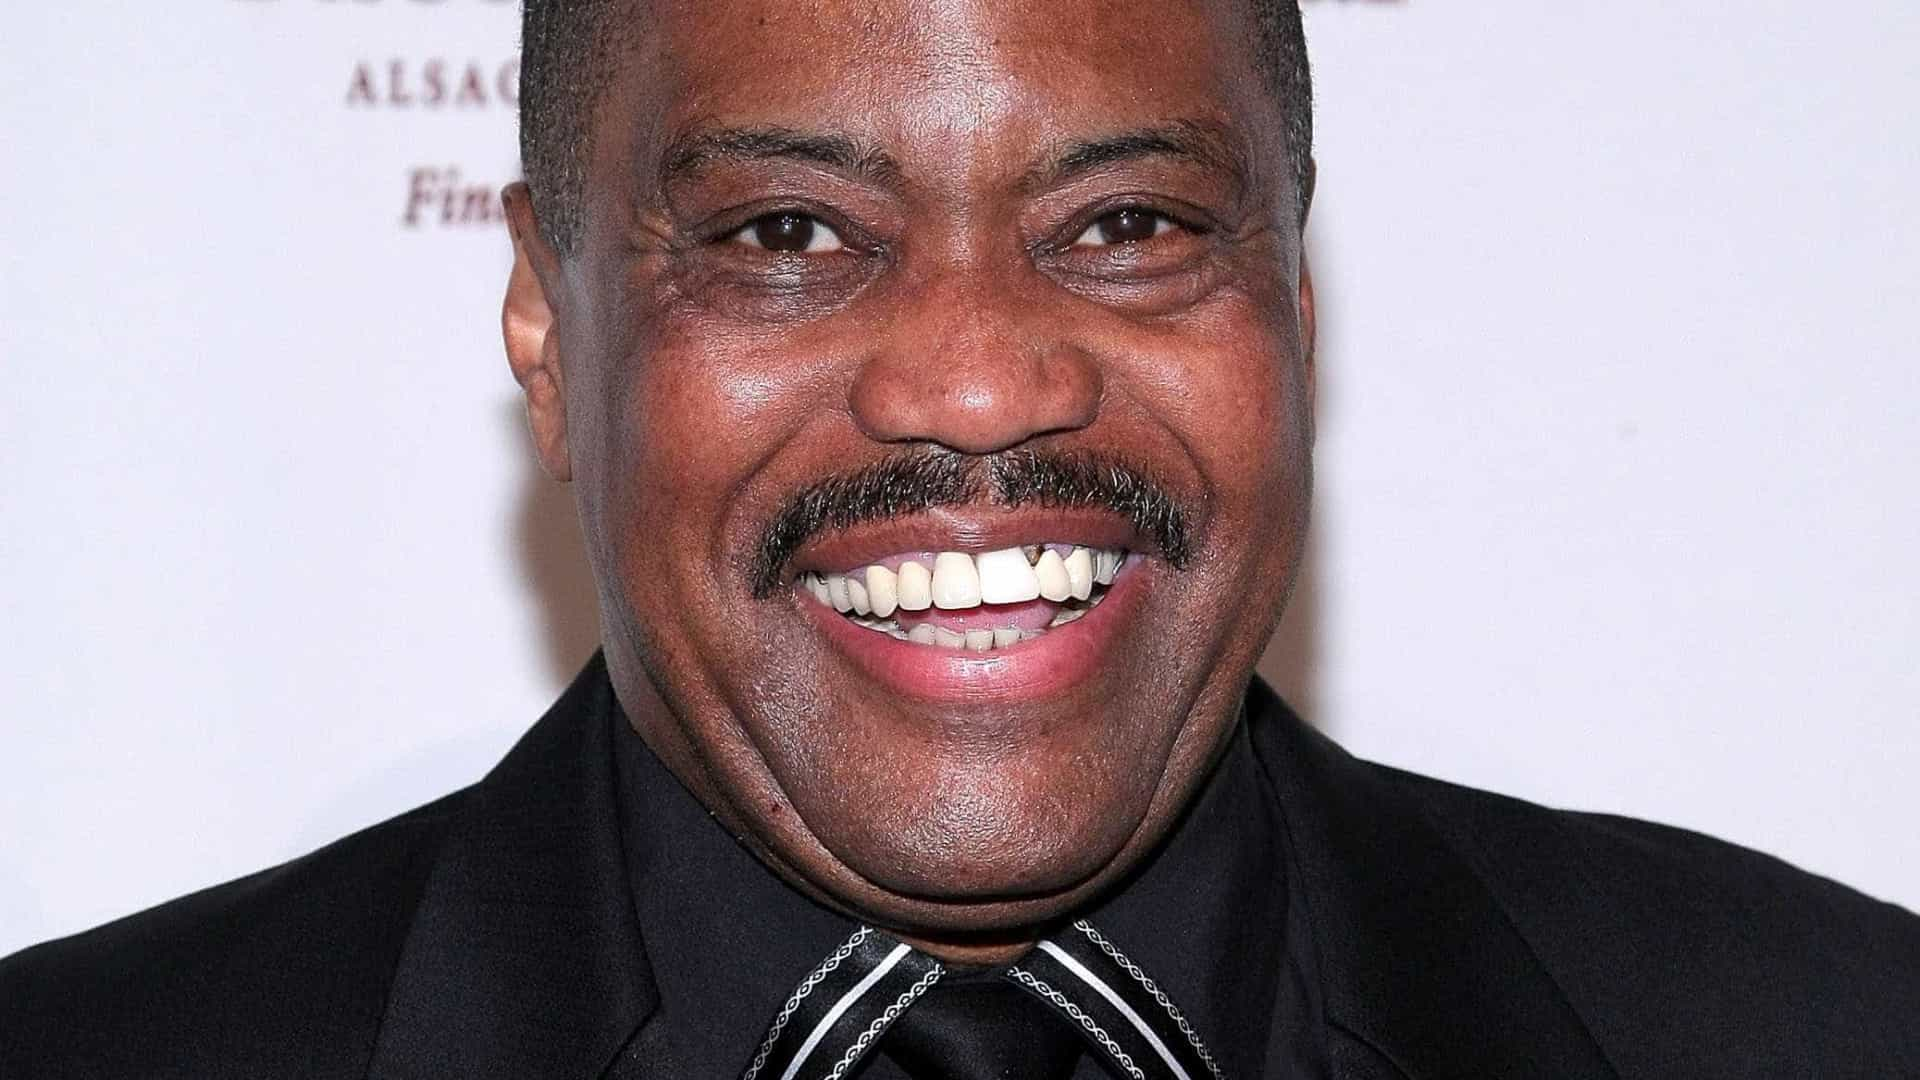 Cantor Cuba Gooding Sr. encontrado morto no carro